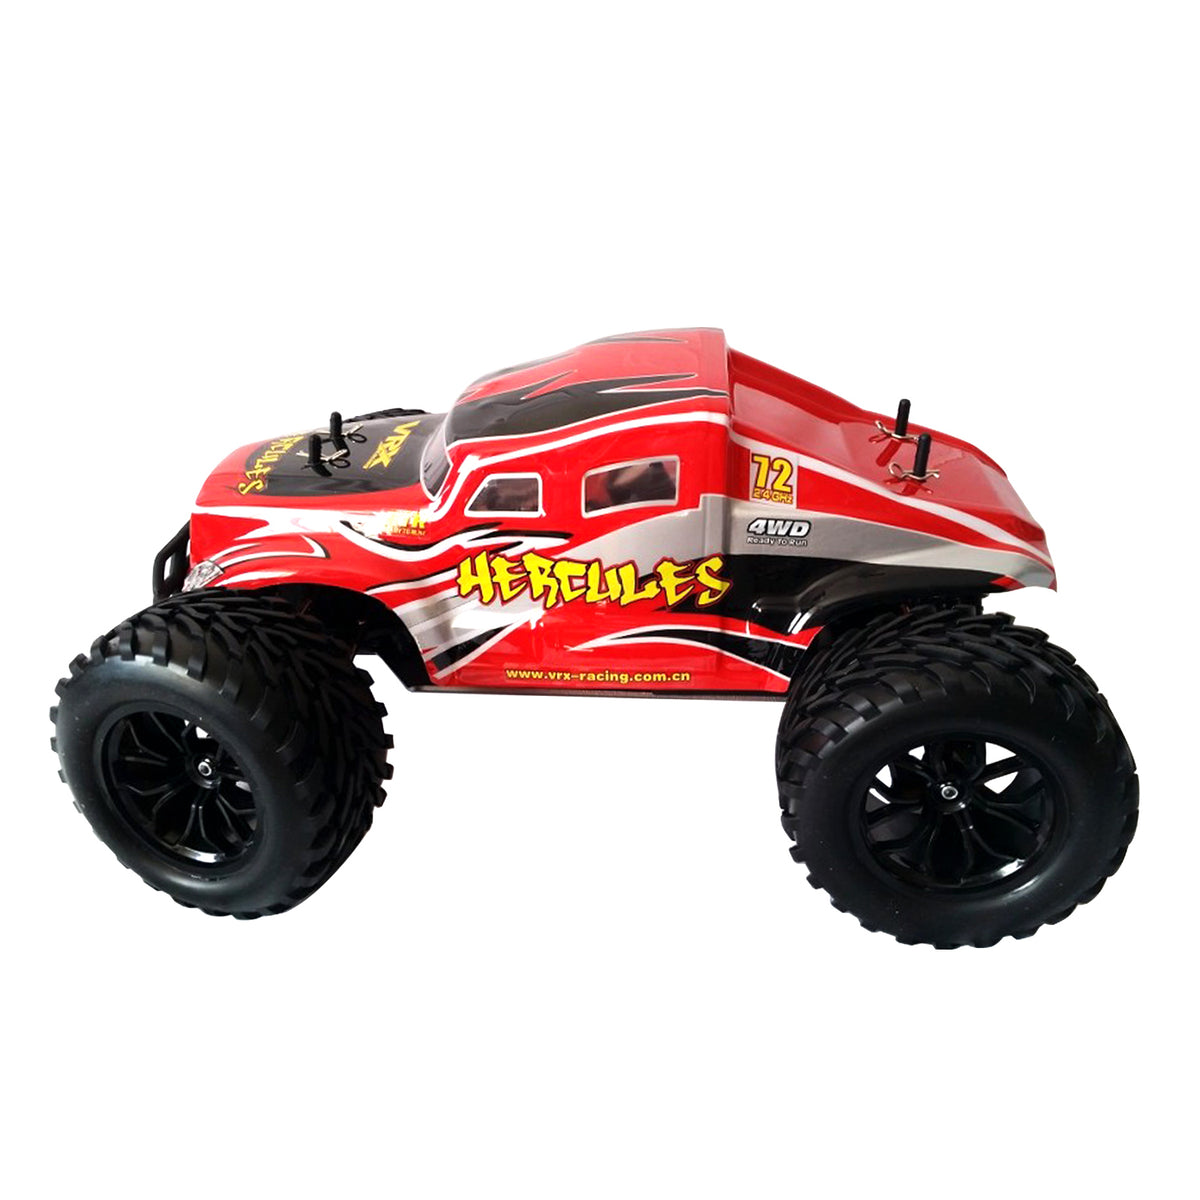 VRX Racing 1/10 Scale HERCULES Monster Truck RC 4WD